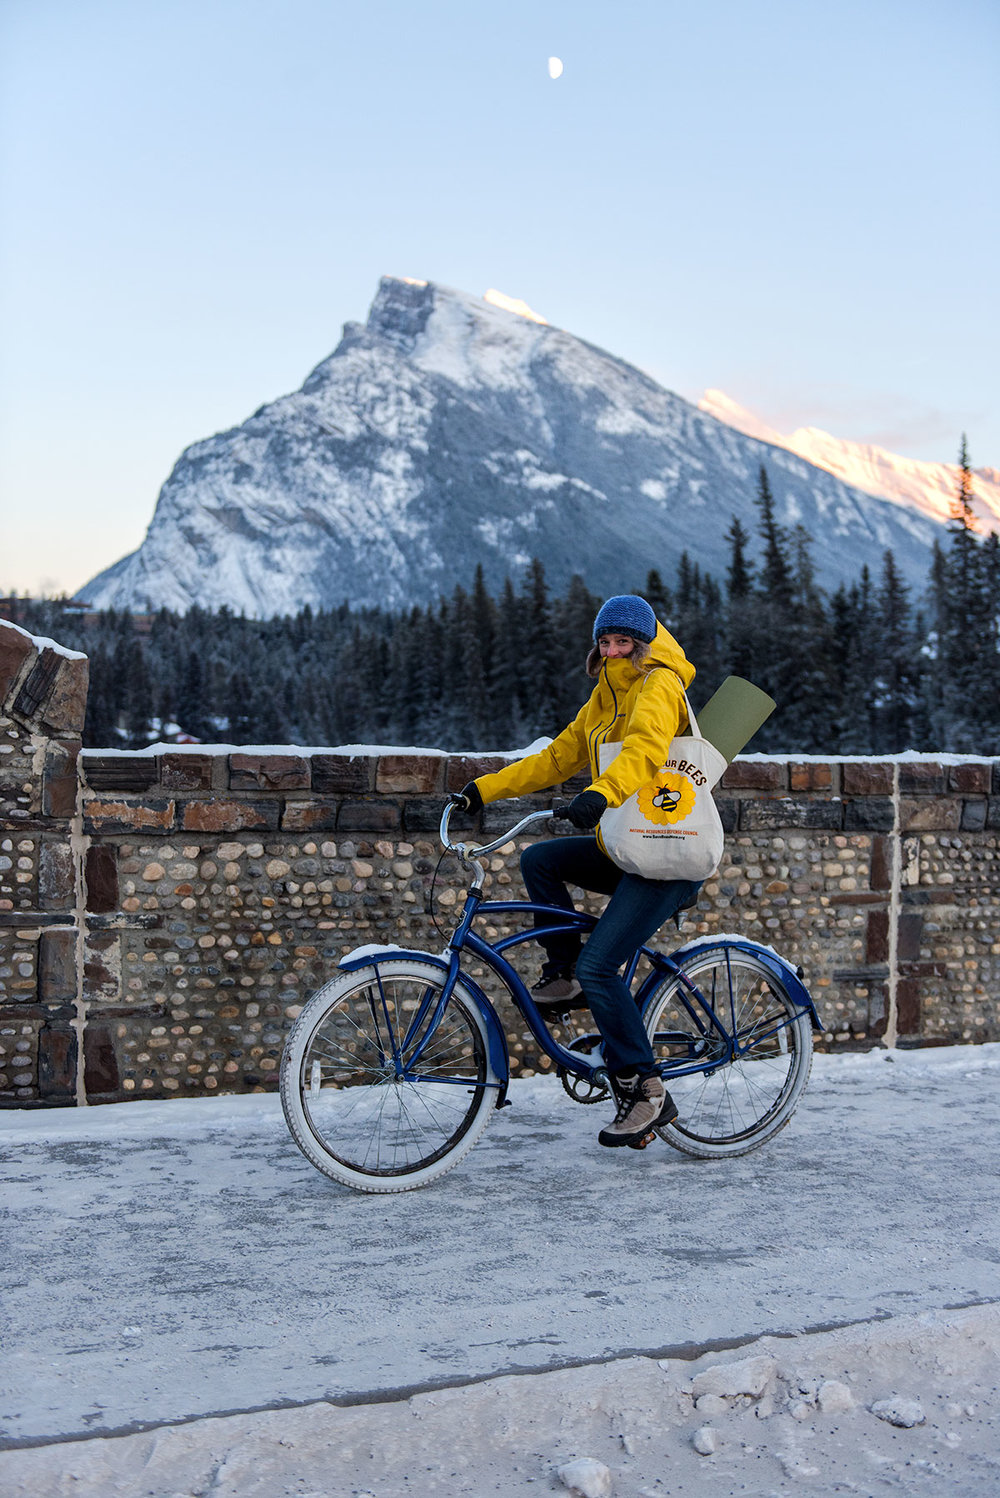 austin-trigg-patagonia-banff-alberta-winter-bicycle-lifestyle-mt-rundle-cold-yoga-adventure.jpg